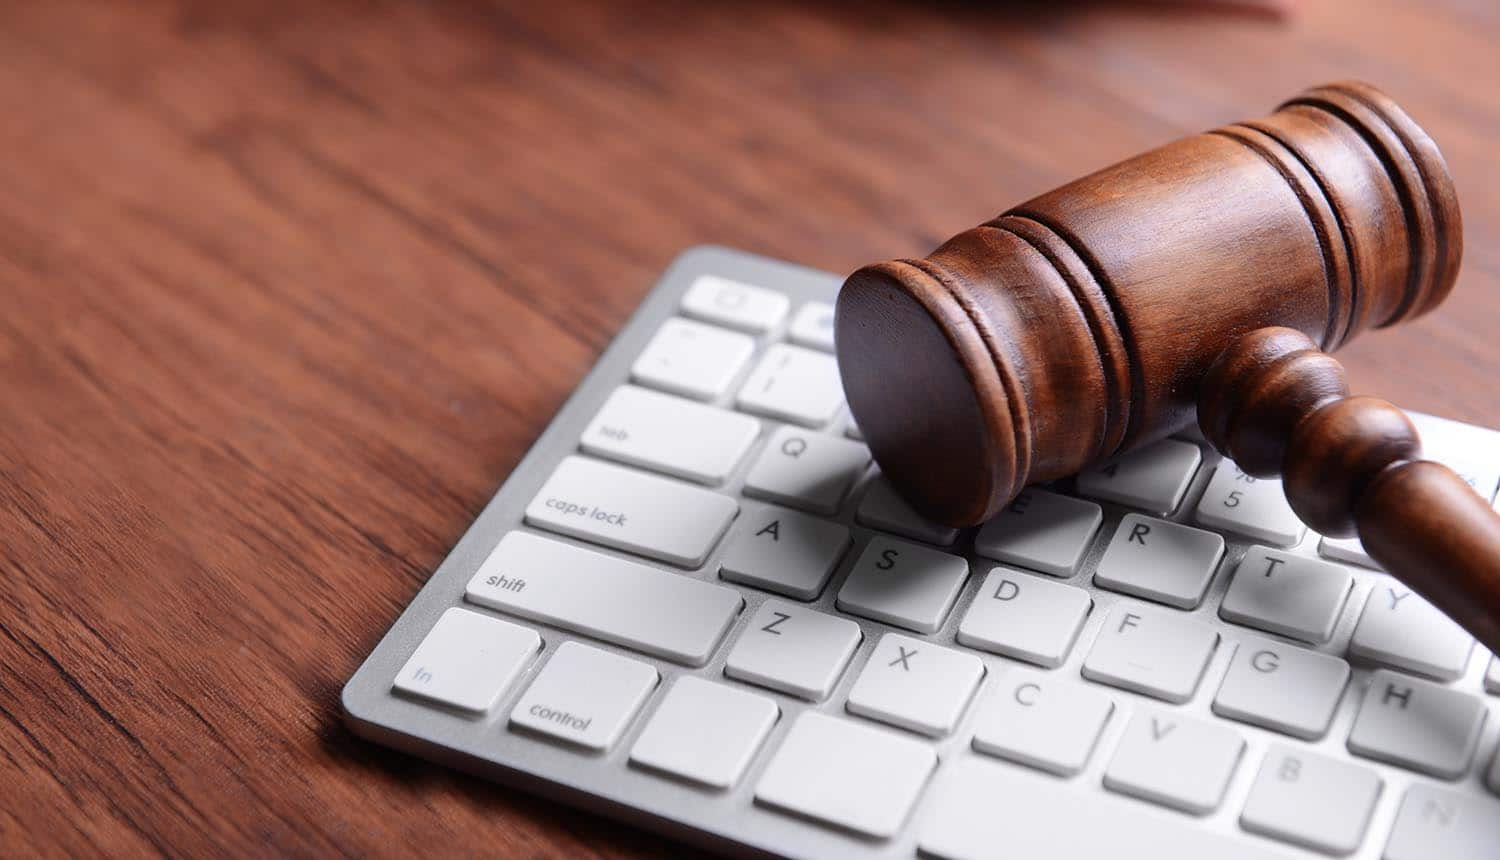 Wooden gavel and keyboard on desk showing the steps to take in anticipation of CCPA litigation in 2020